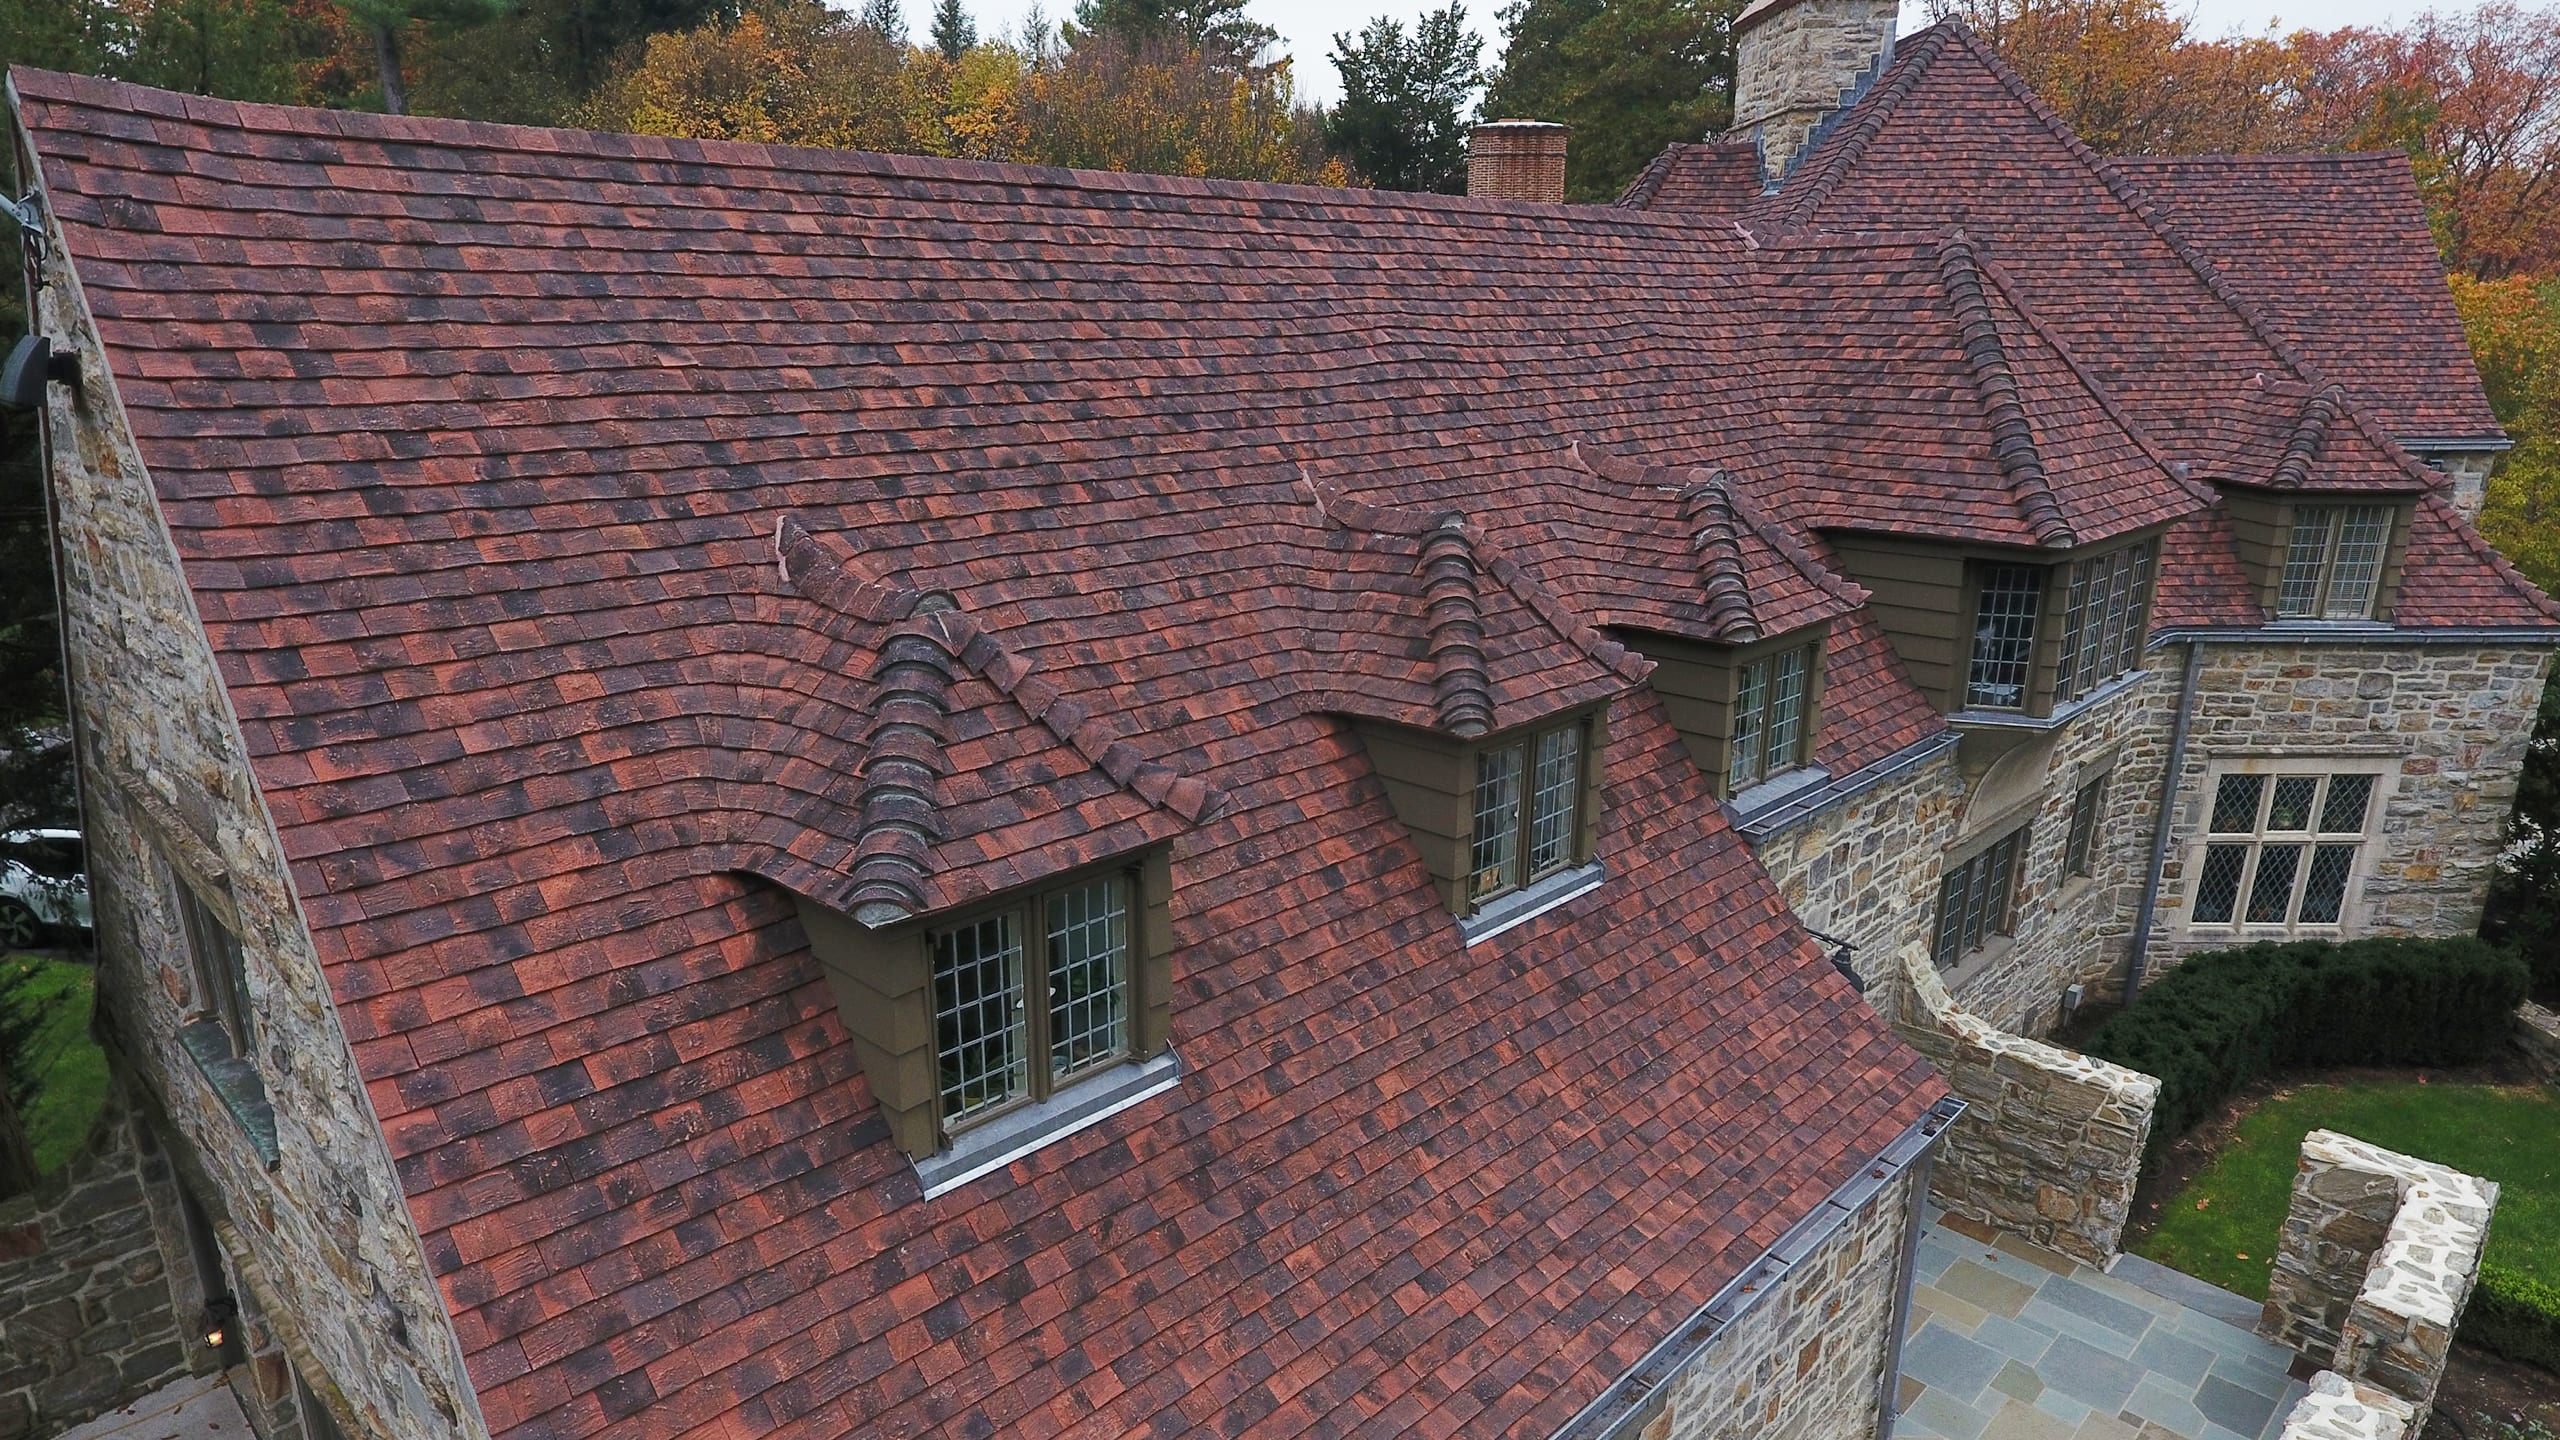 Private Residence - Wyomissing | Ludowici Roof Tile